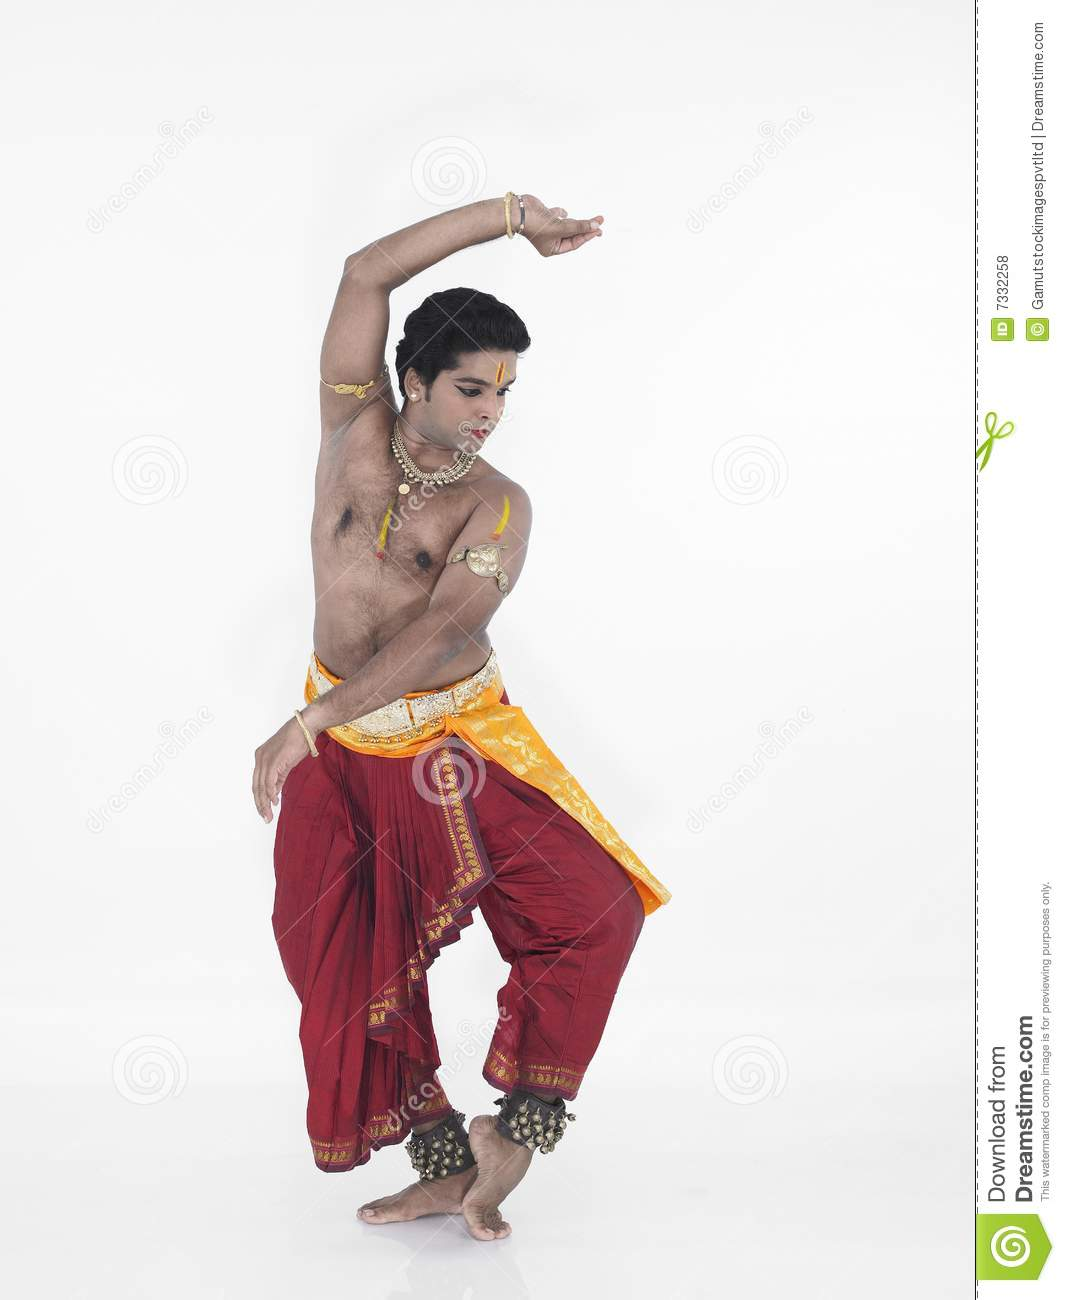 bollywood dance movies and indian american Bollywood dance is the dance-form used in the indian filmsit is a mixture of numerous styles these styles include belly-dancing, kathak, indian folk, western popular, and modern, jazz, and even western erotic dancing.